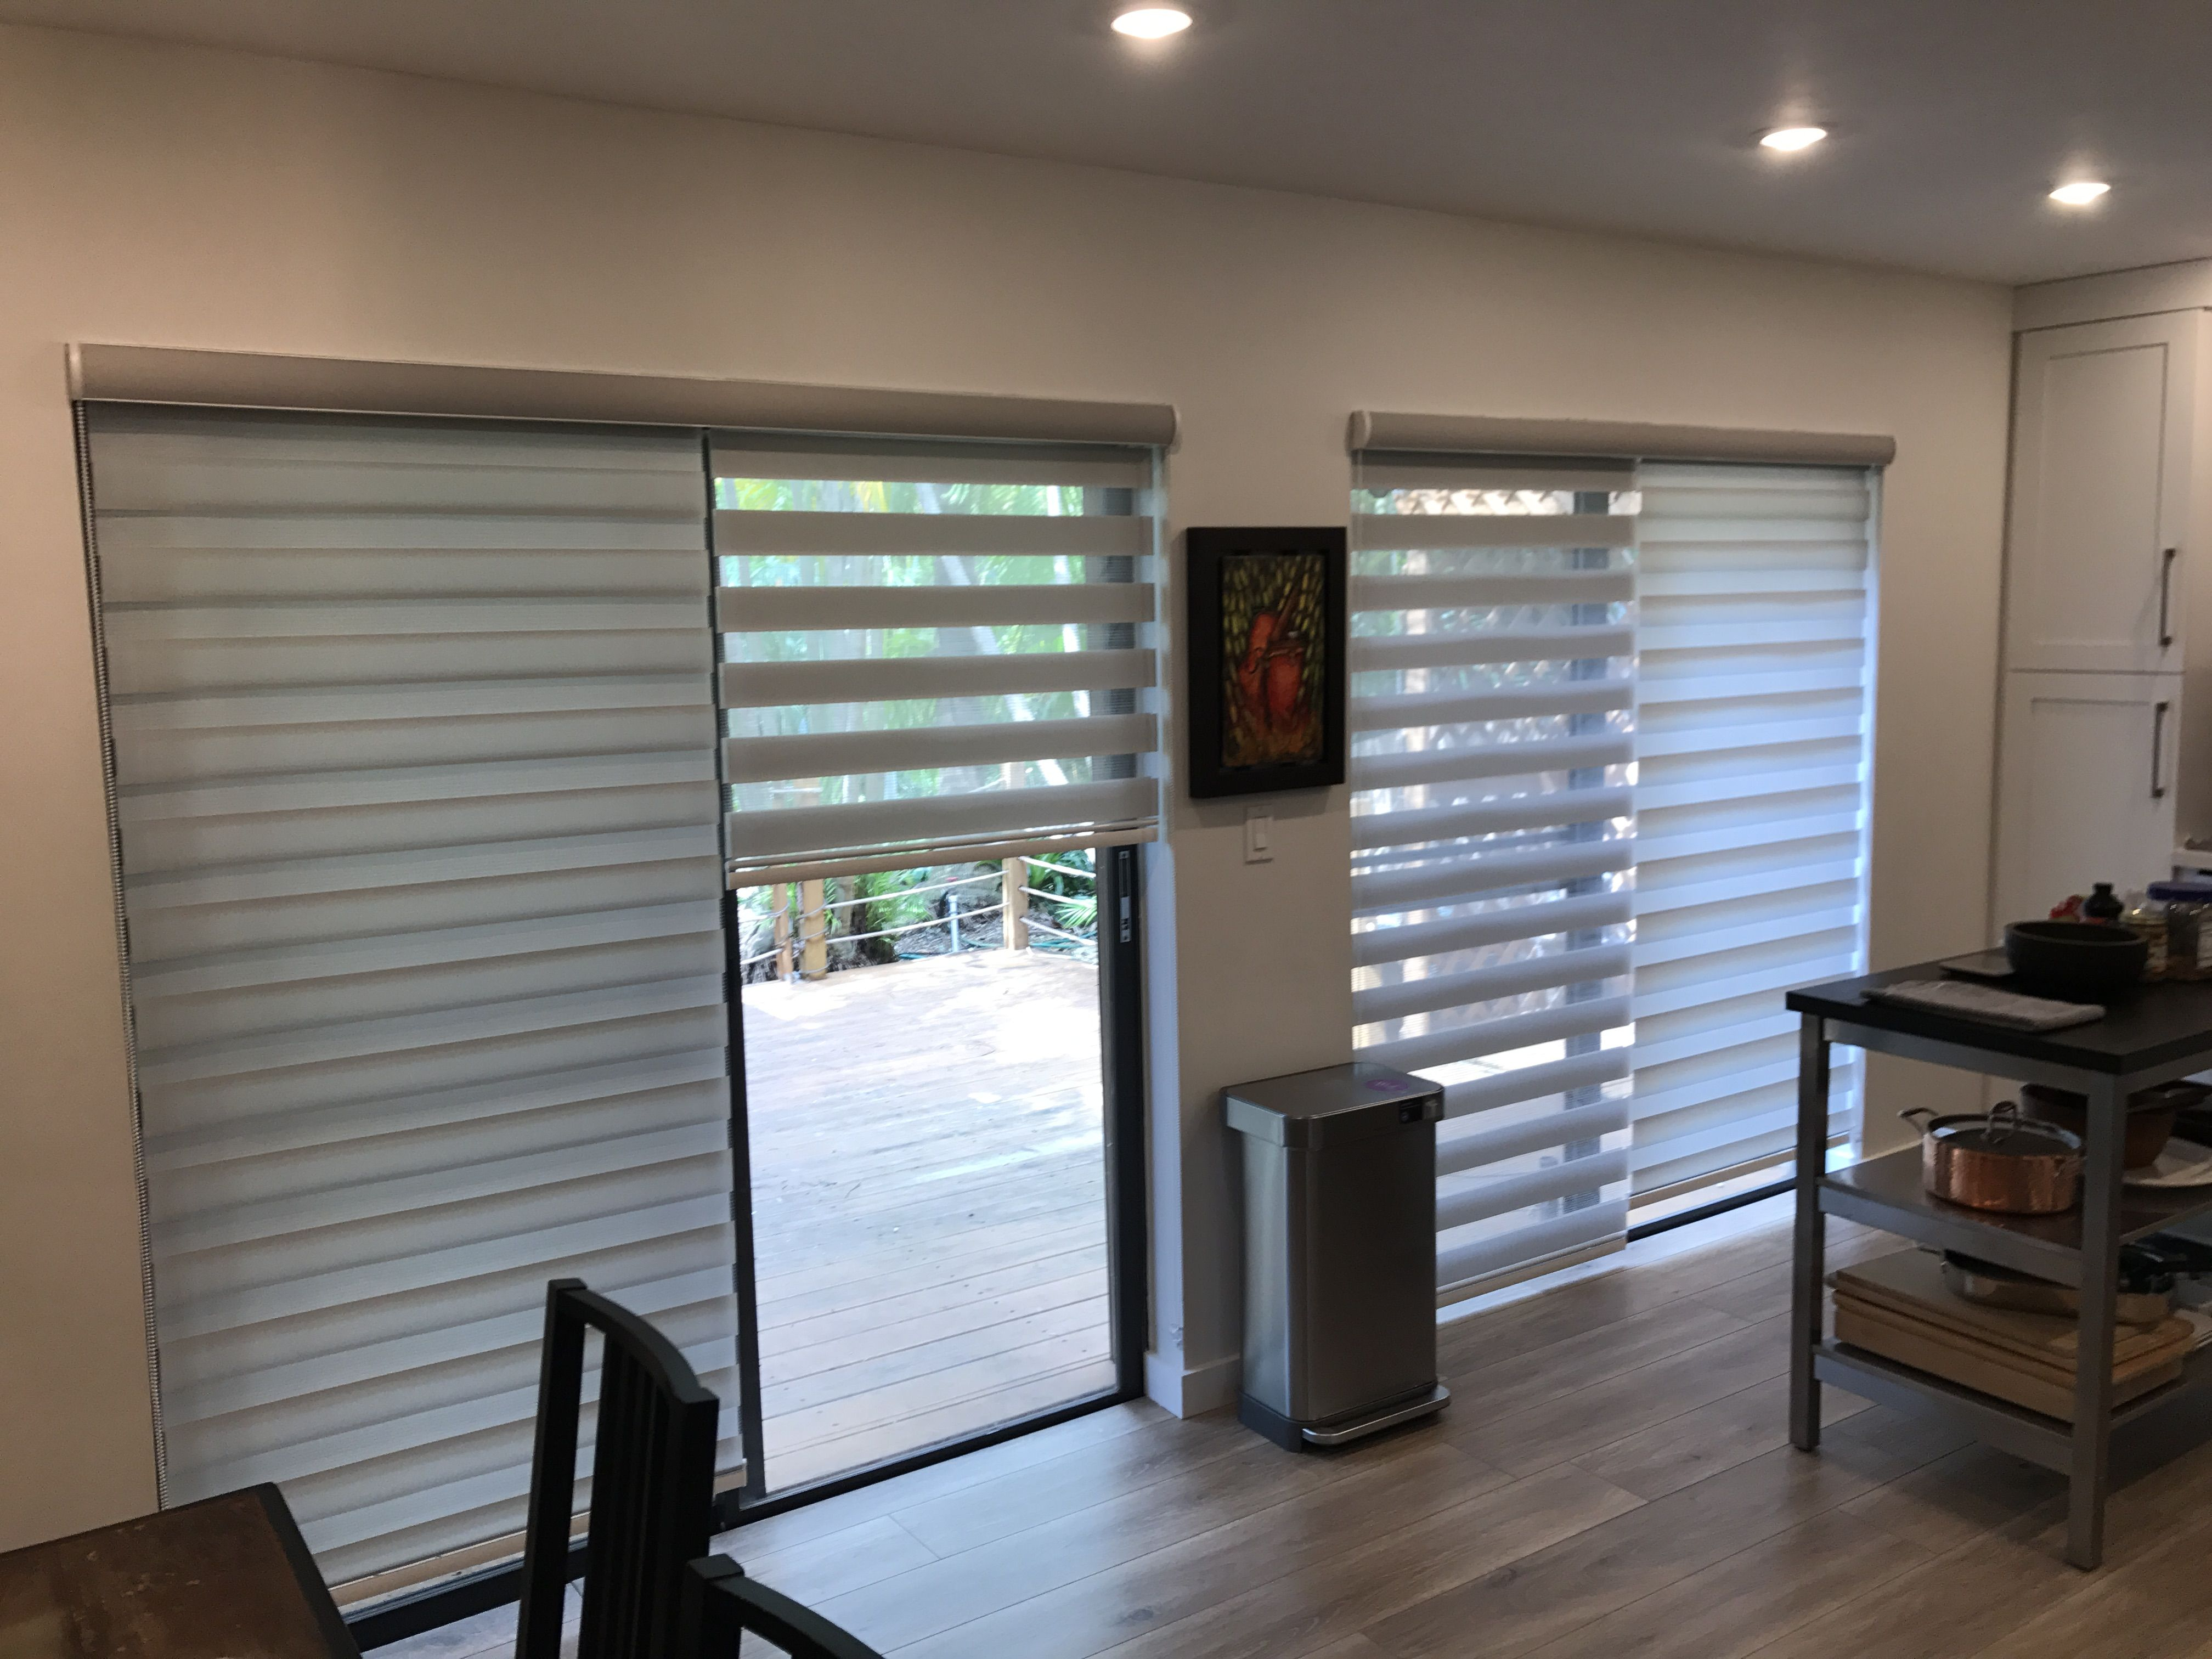 Sliding Door Light Grey 2in1 Zebra Illusion Privacy Shades